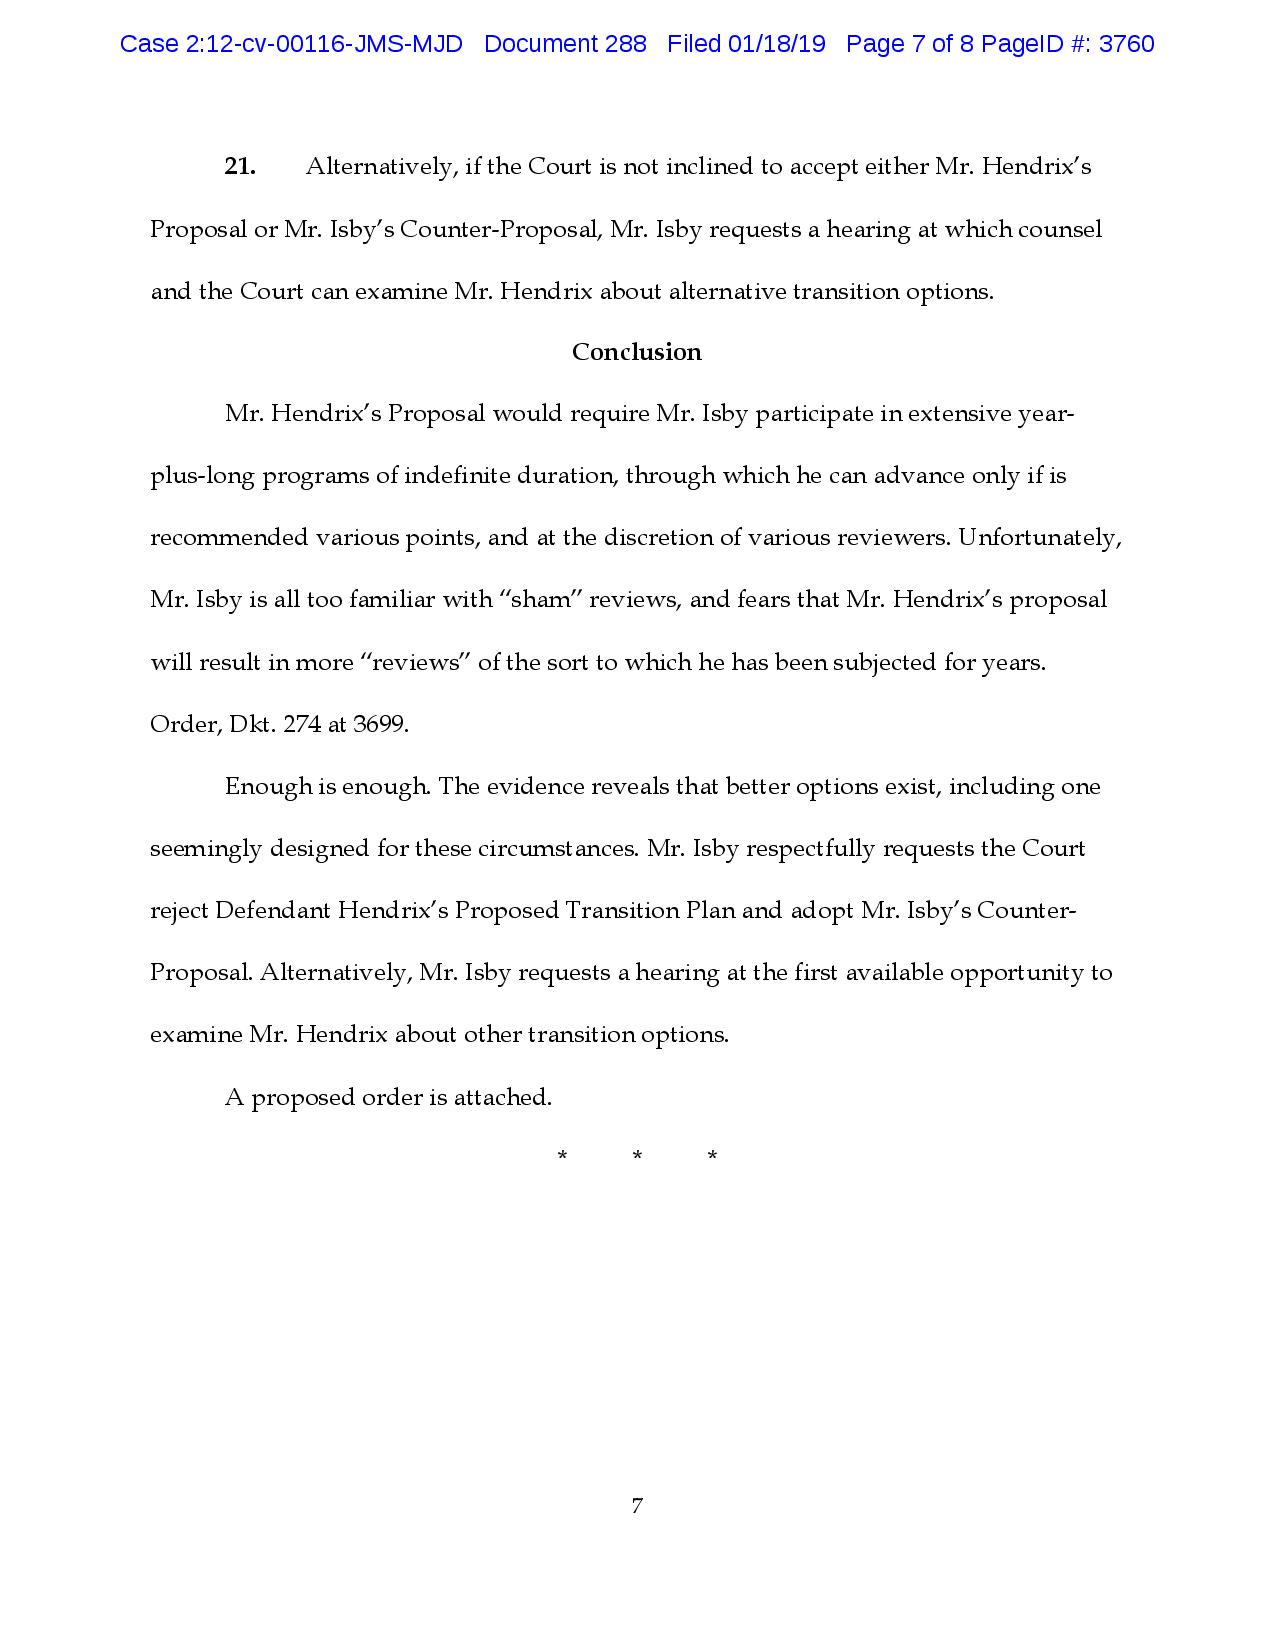 2019-01-18 (Dkt. 288) Isby - Resp. to Hendrix s Proposed Plan (with proposed order)-page-007.jpg